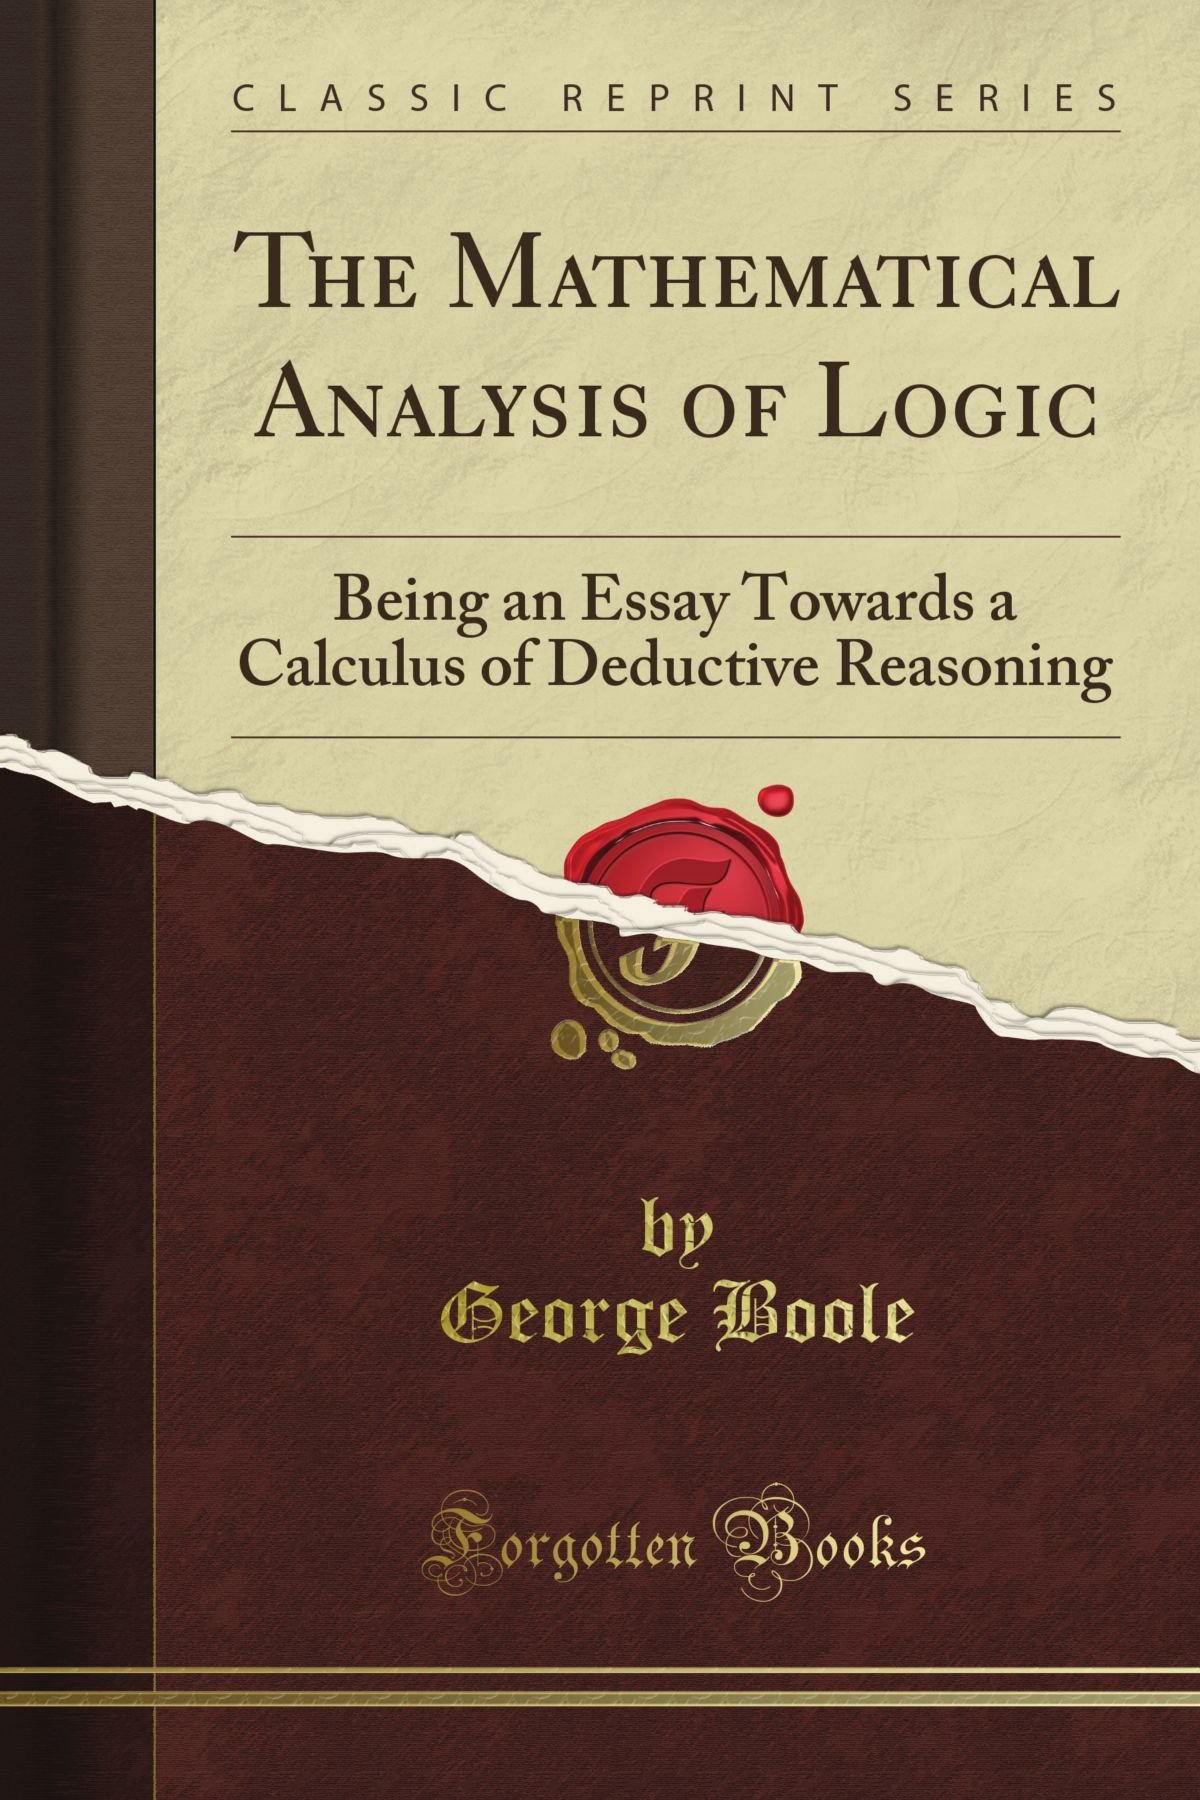 the mathematical analysis of logic being an essay towards a the mathematical analysis of logic being an essay towards a calculus of deductive reasoning classic reprint amazon co uk george boole 9781440066429